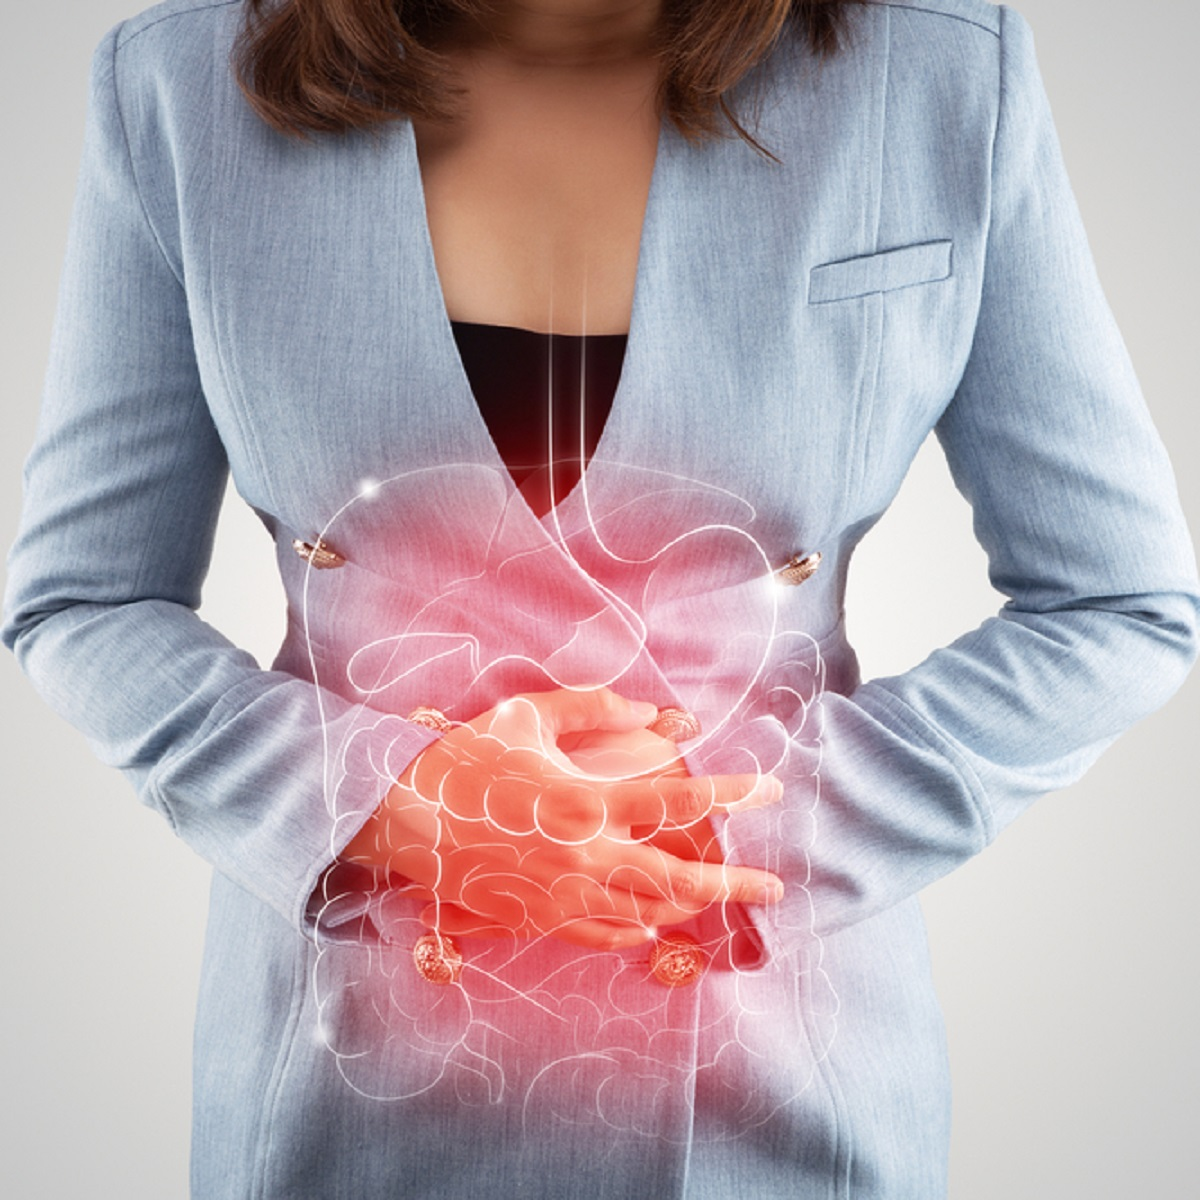 CROHN'S DISEASE – Symptoms, Causes, Risk Factors, Crohn's Disease Diet and Supplements for Crohn's Disease Treatment